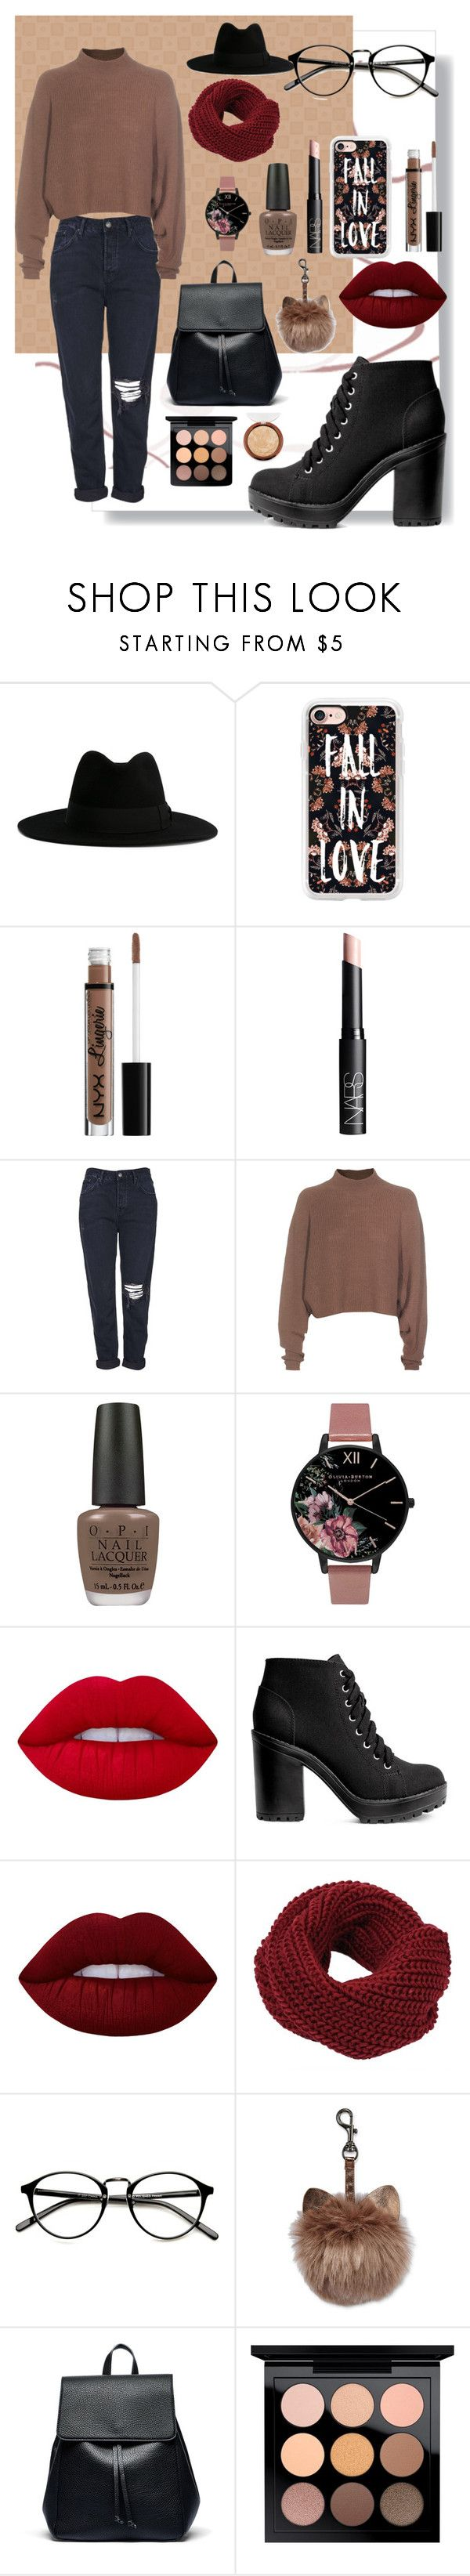 """""""CUP OF COFFEE"""" by dashademianovich ❤ liked on Polyvore featuring Yves Saint Laurent, Casetify, NYX, NARS Cosmetics, Topshop, Acne Studios, OPI, Olivia Burton, Lime Crime and H&M"""